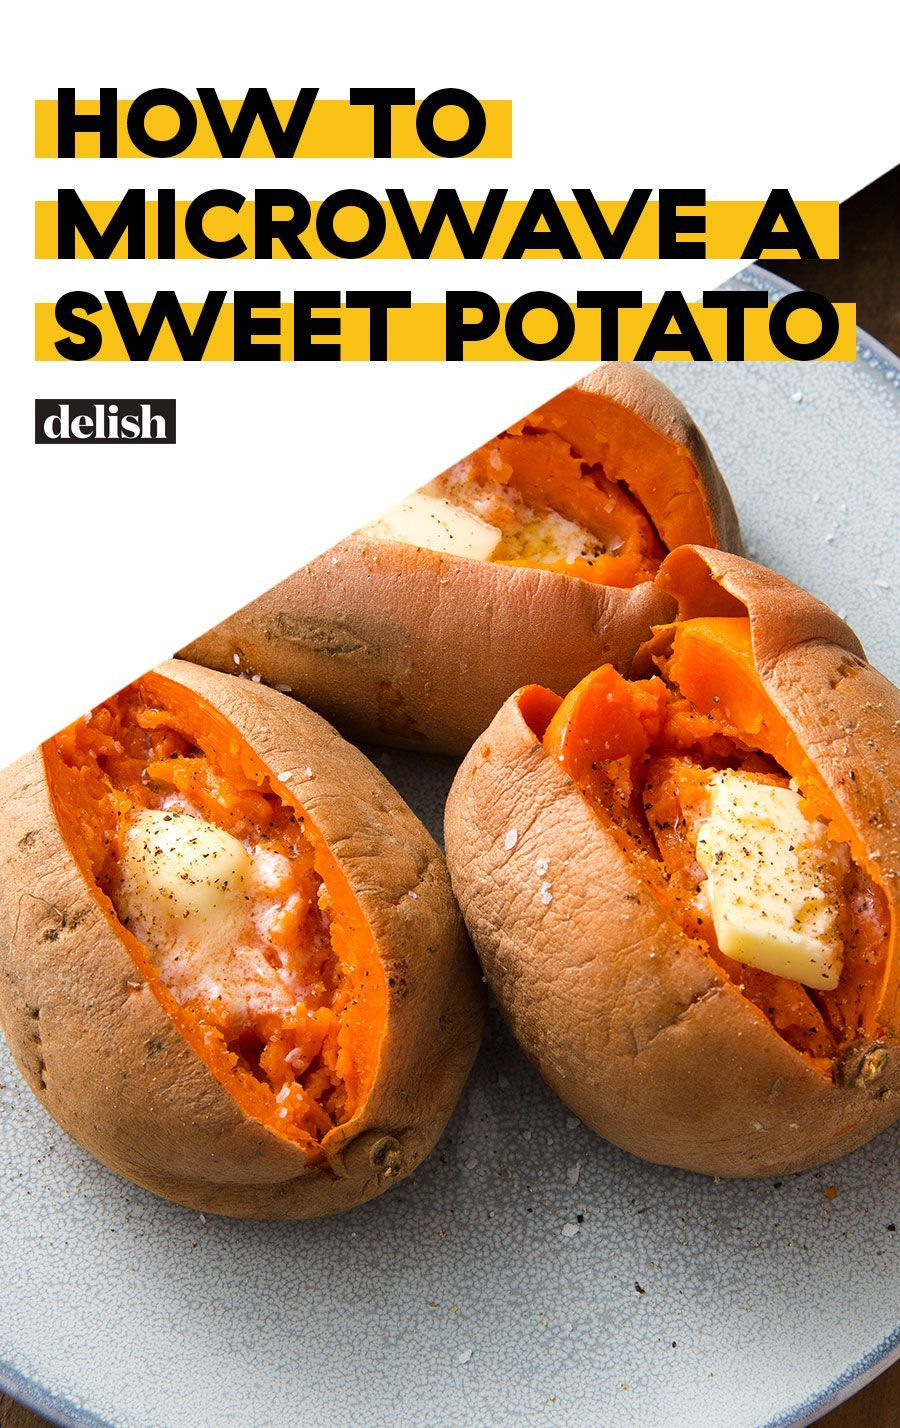 You Can Bake An Incredible Sweet Potato In Your Microwave In Five Minutes Flat Recipe Cooking Sweet Potatoes Sweet Potato Recipes Baked Microwave Sweet Potato